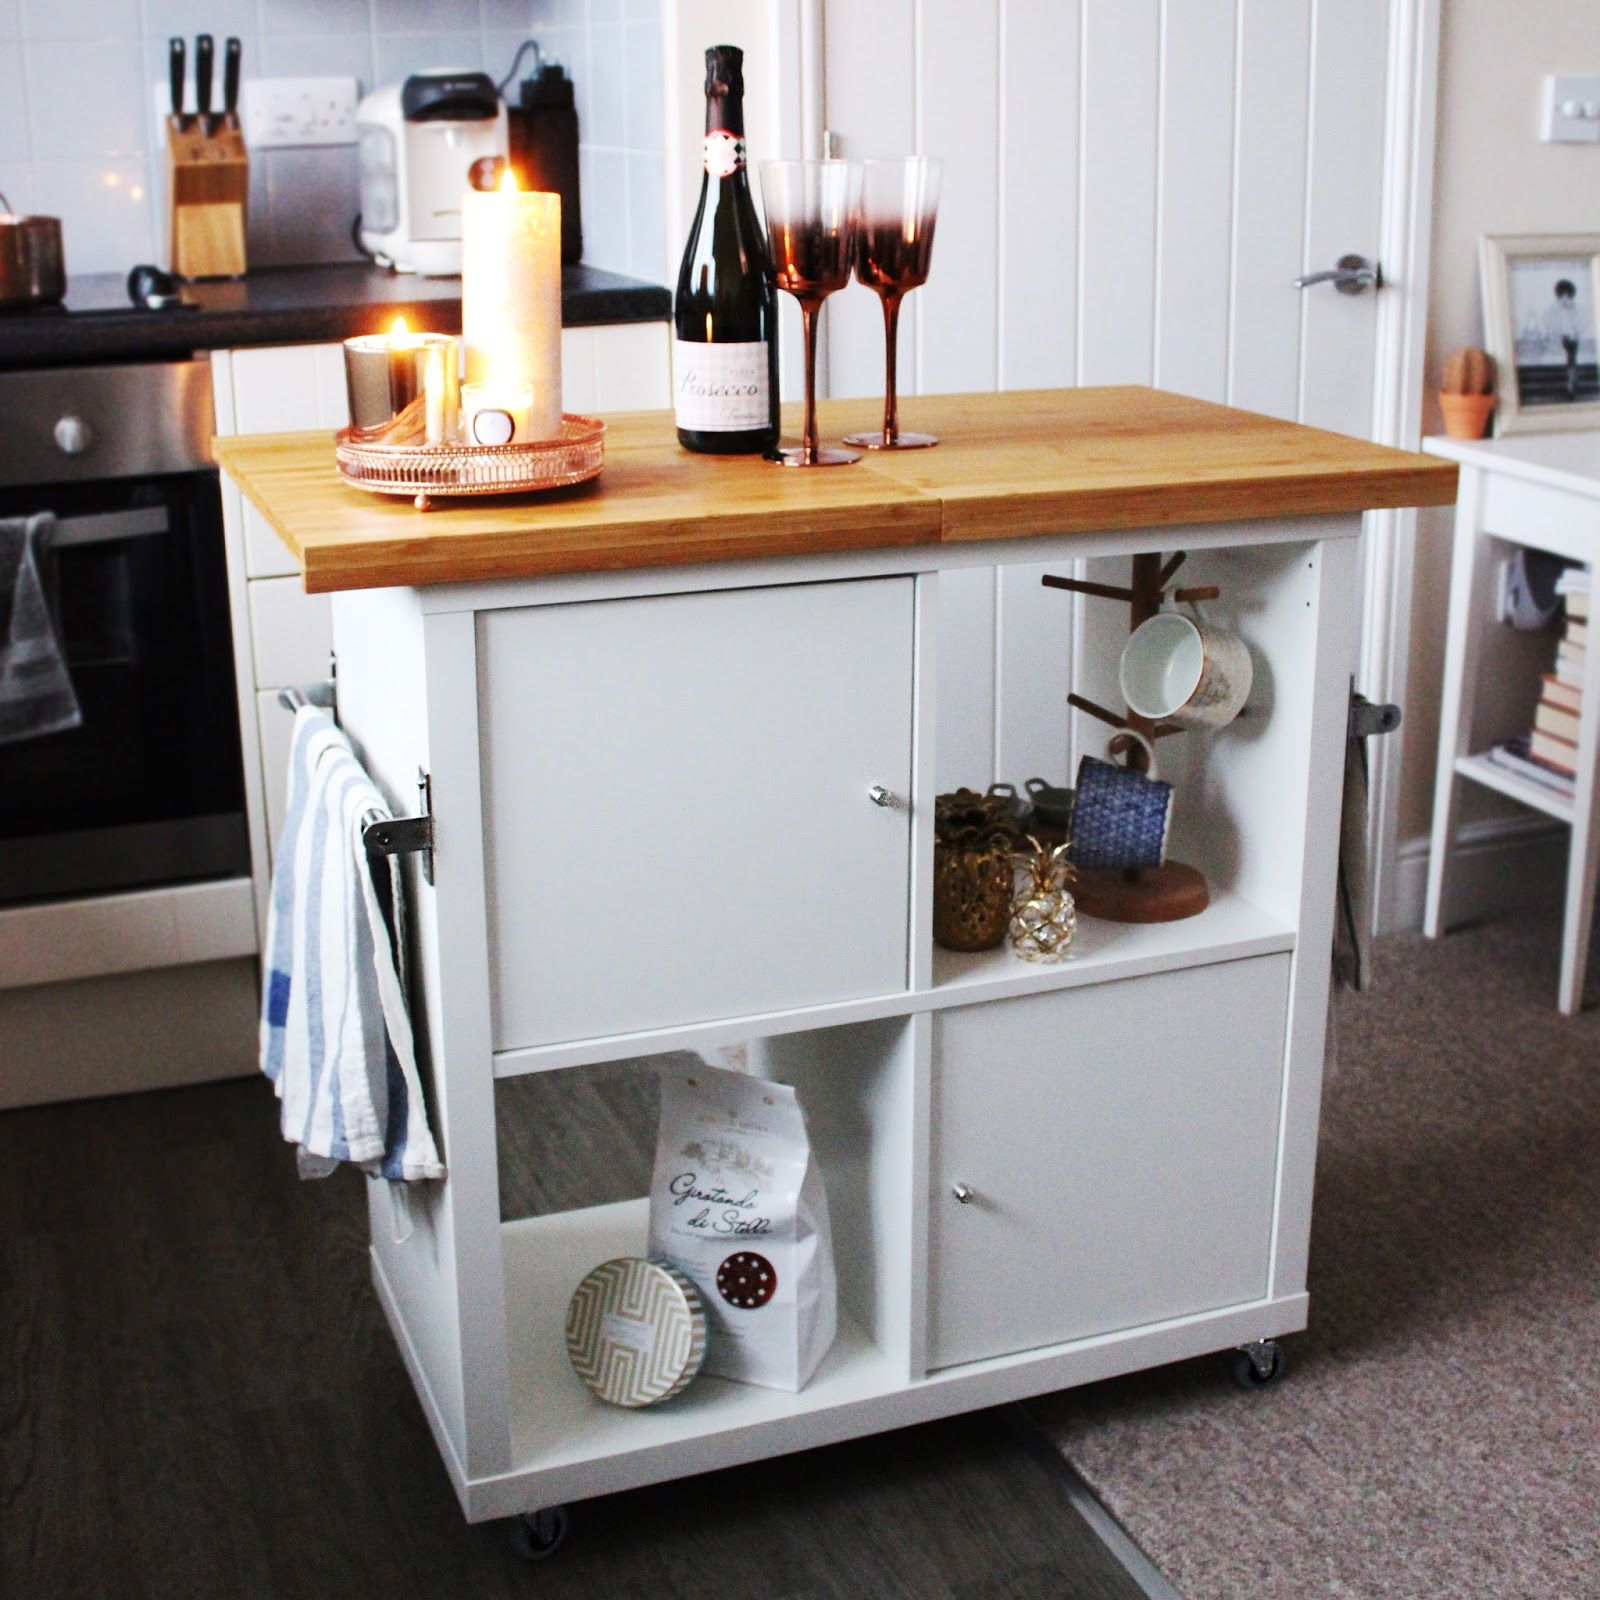 Ilot Central Ikea Abstrakt Can T Find Or Afford The Kitchen Island Of Your Dreams Make One